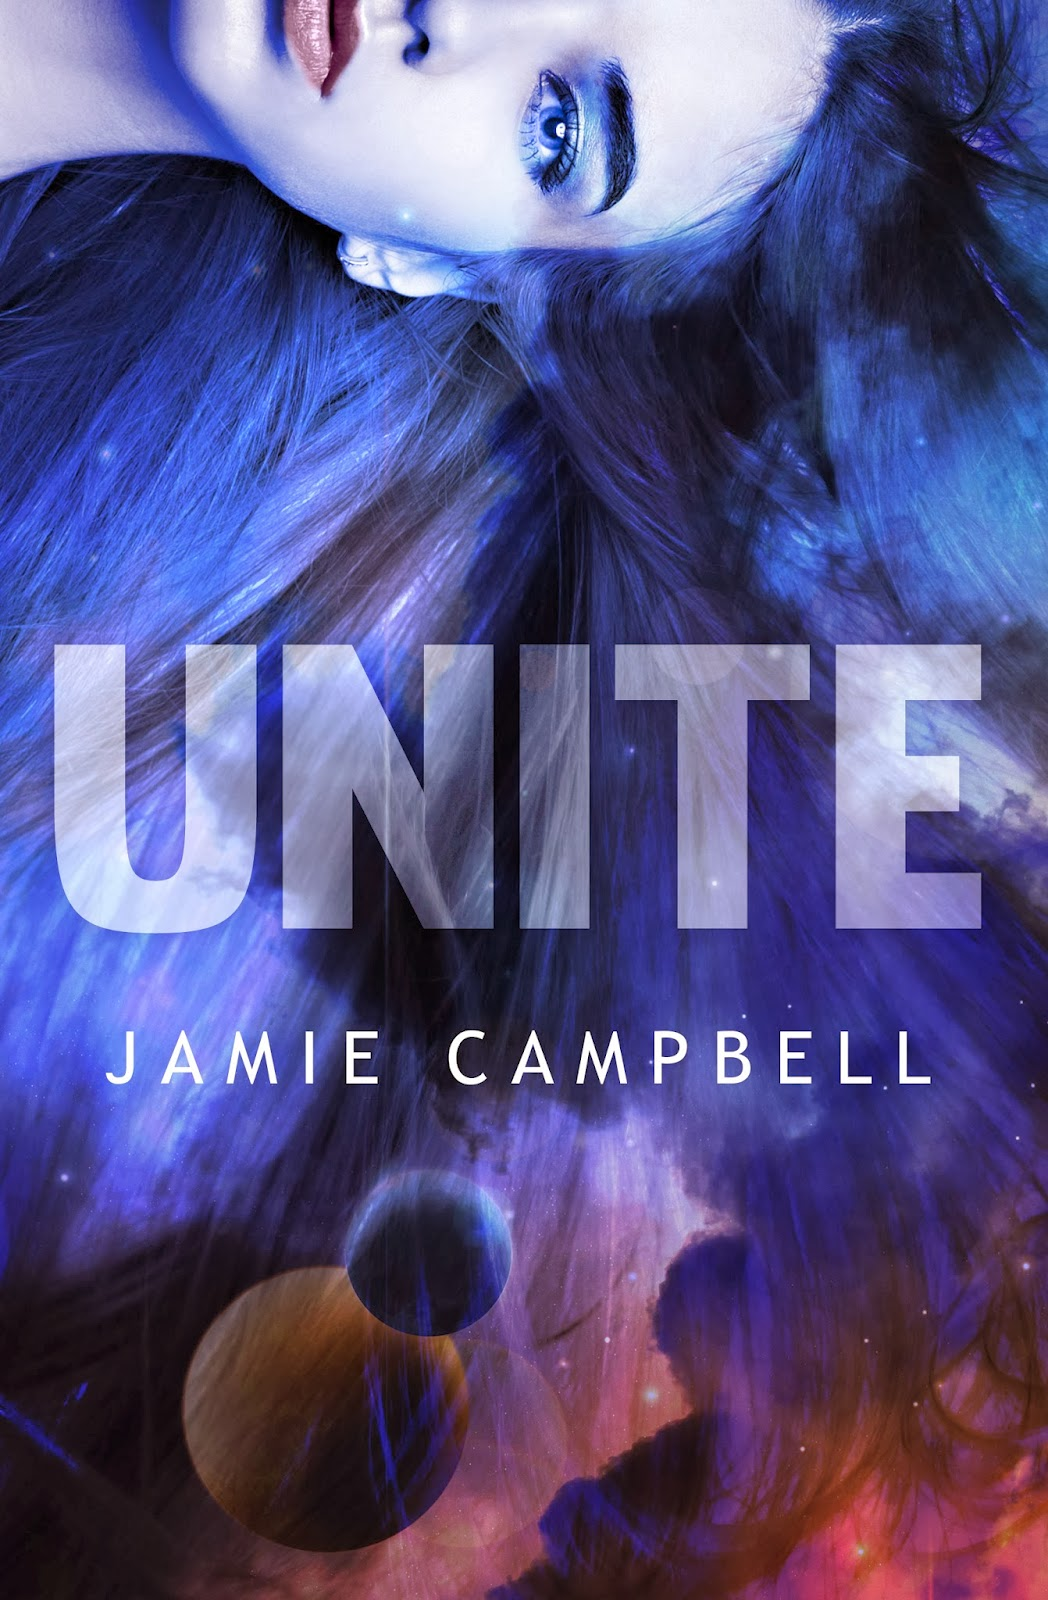 http://clevergirlsread.blogspot.com/2014/02/blog-tour-review-giveaway-unite-project.html